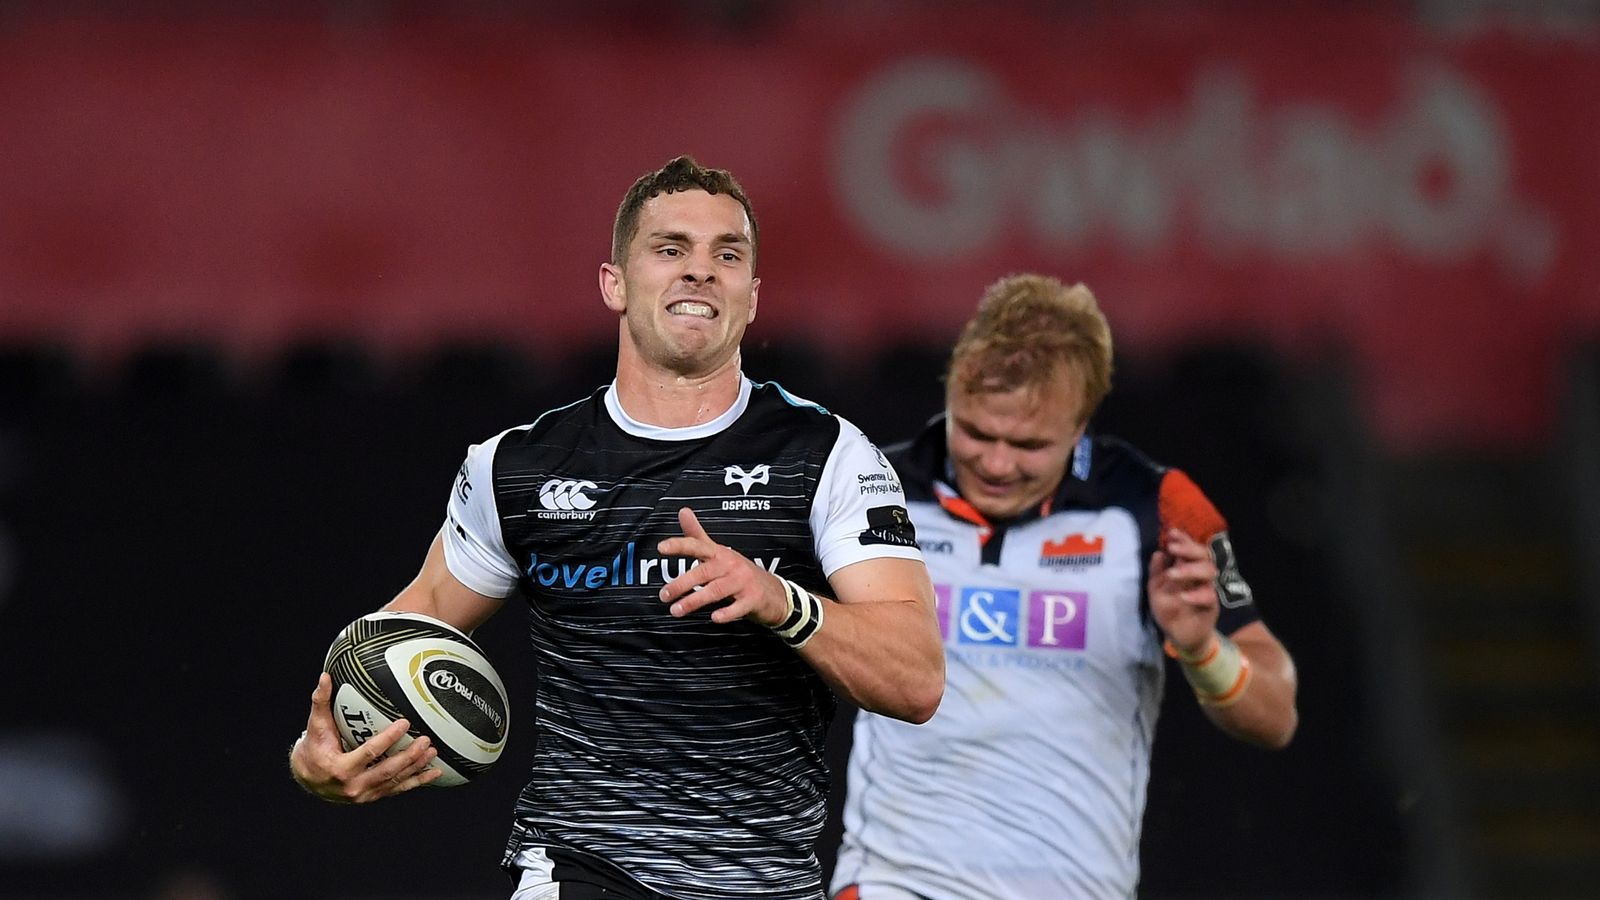 Scarlets v ospreys betting trends winners betting parlor